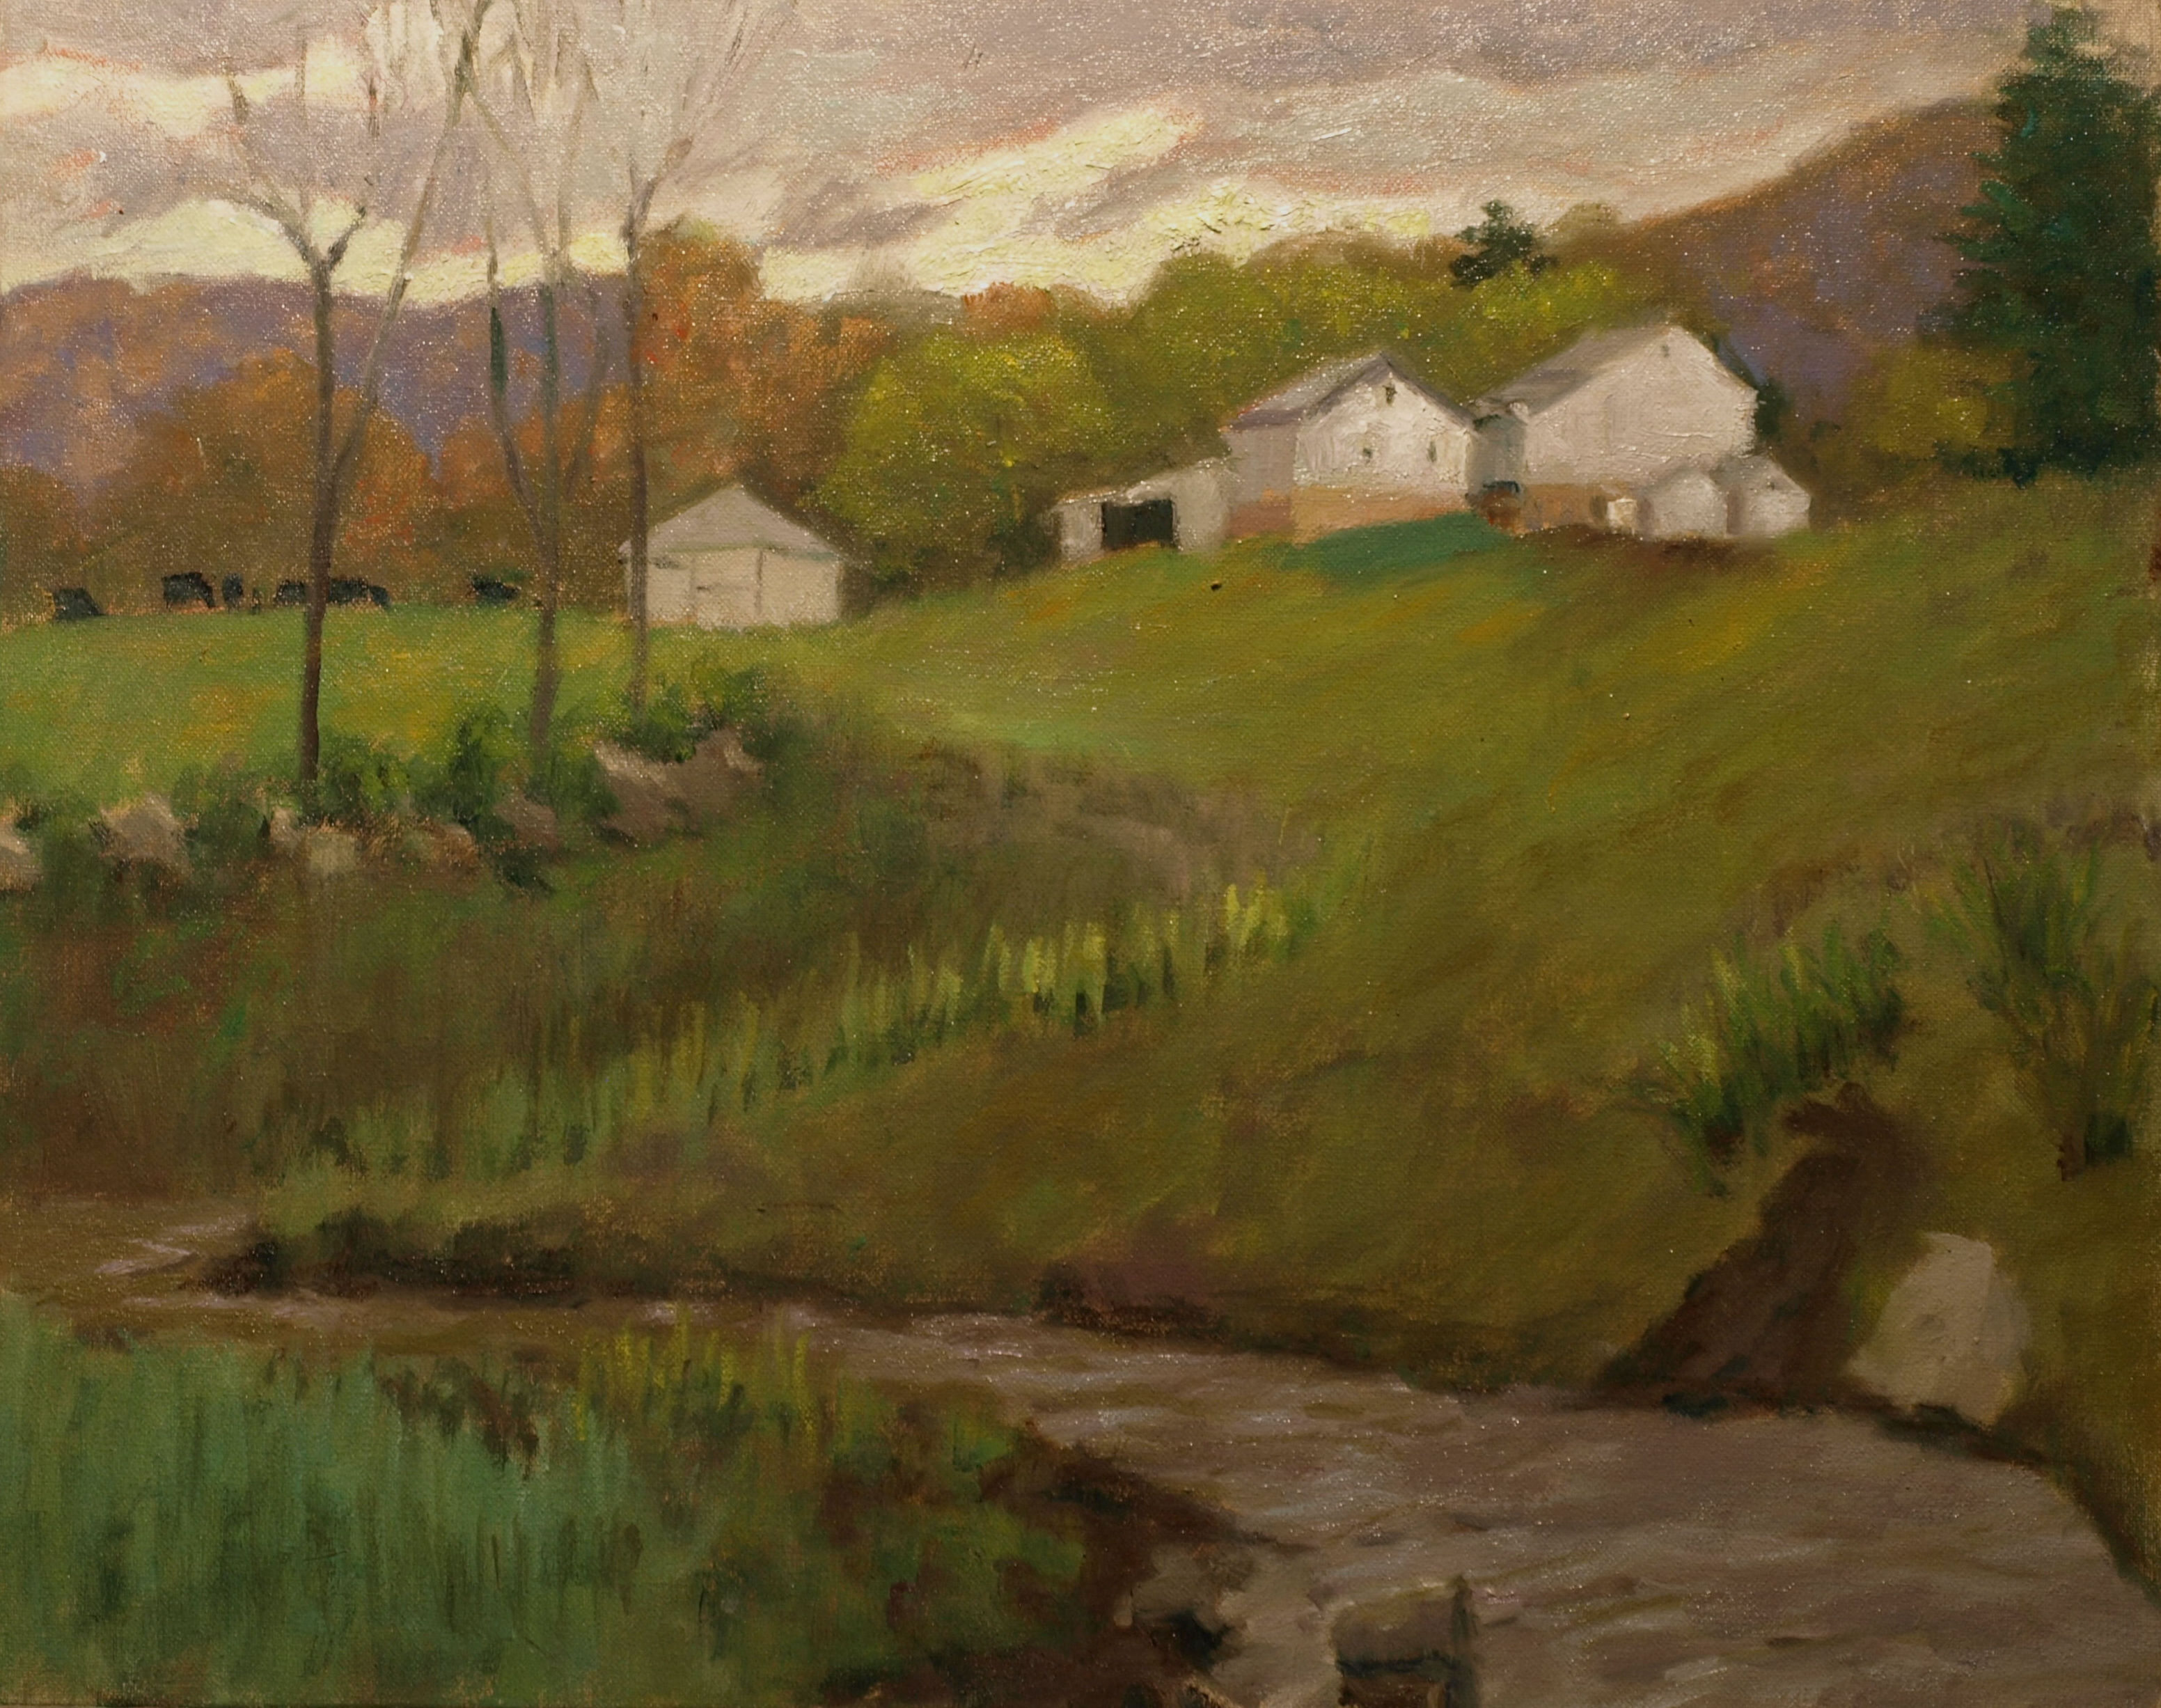 Summer at Smyrski Farm, Oil on Canvas, 16 x 20 Inches, by Richard Stalter, $450